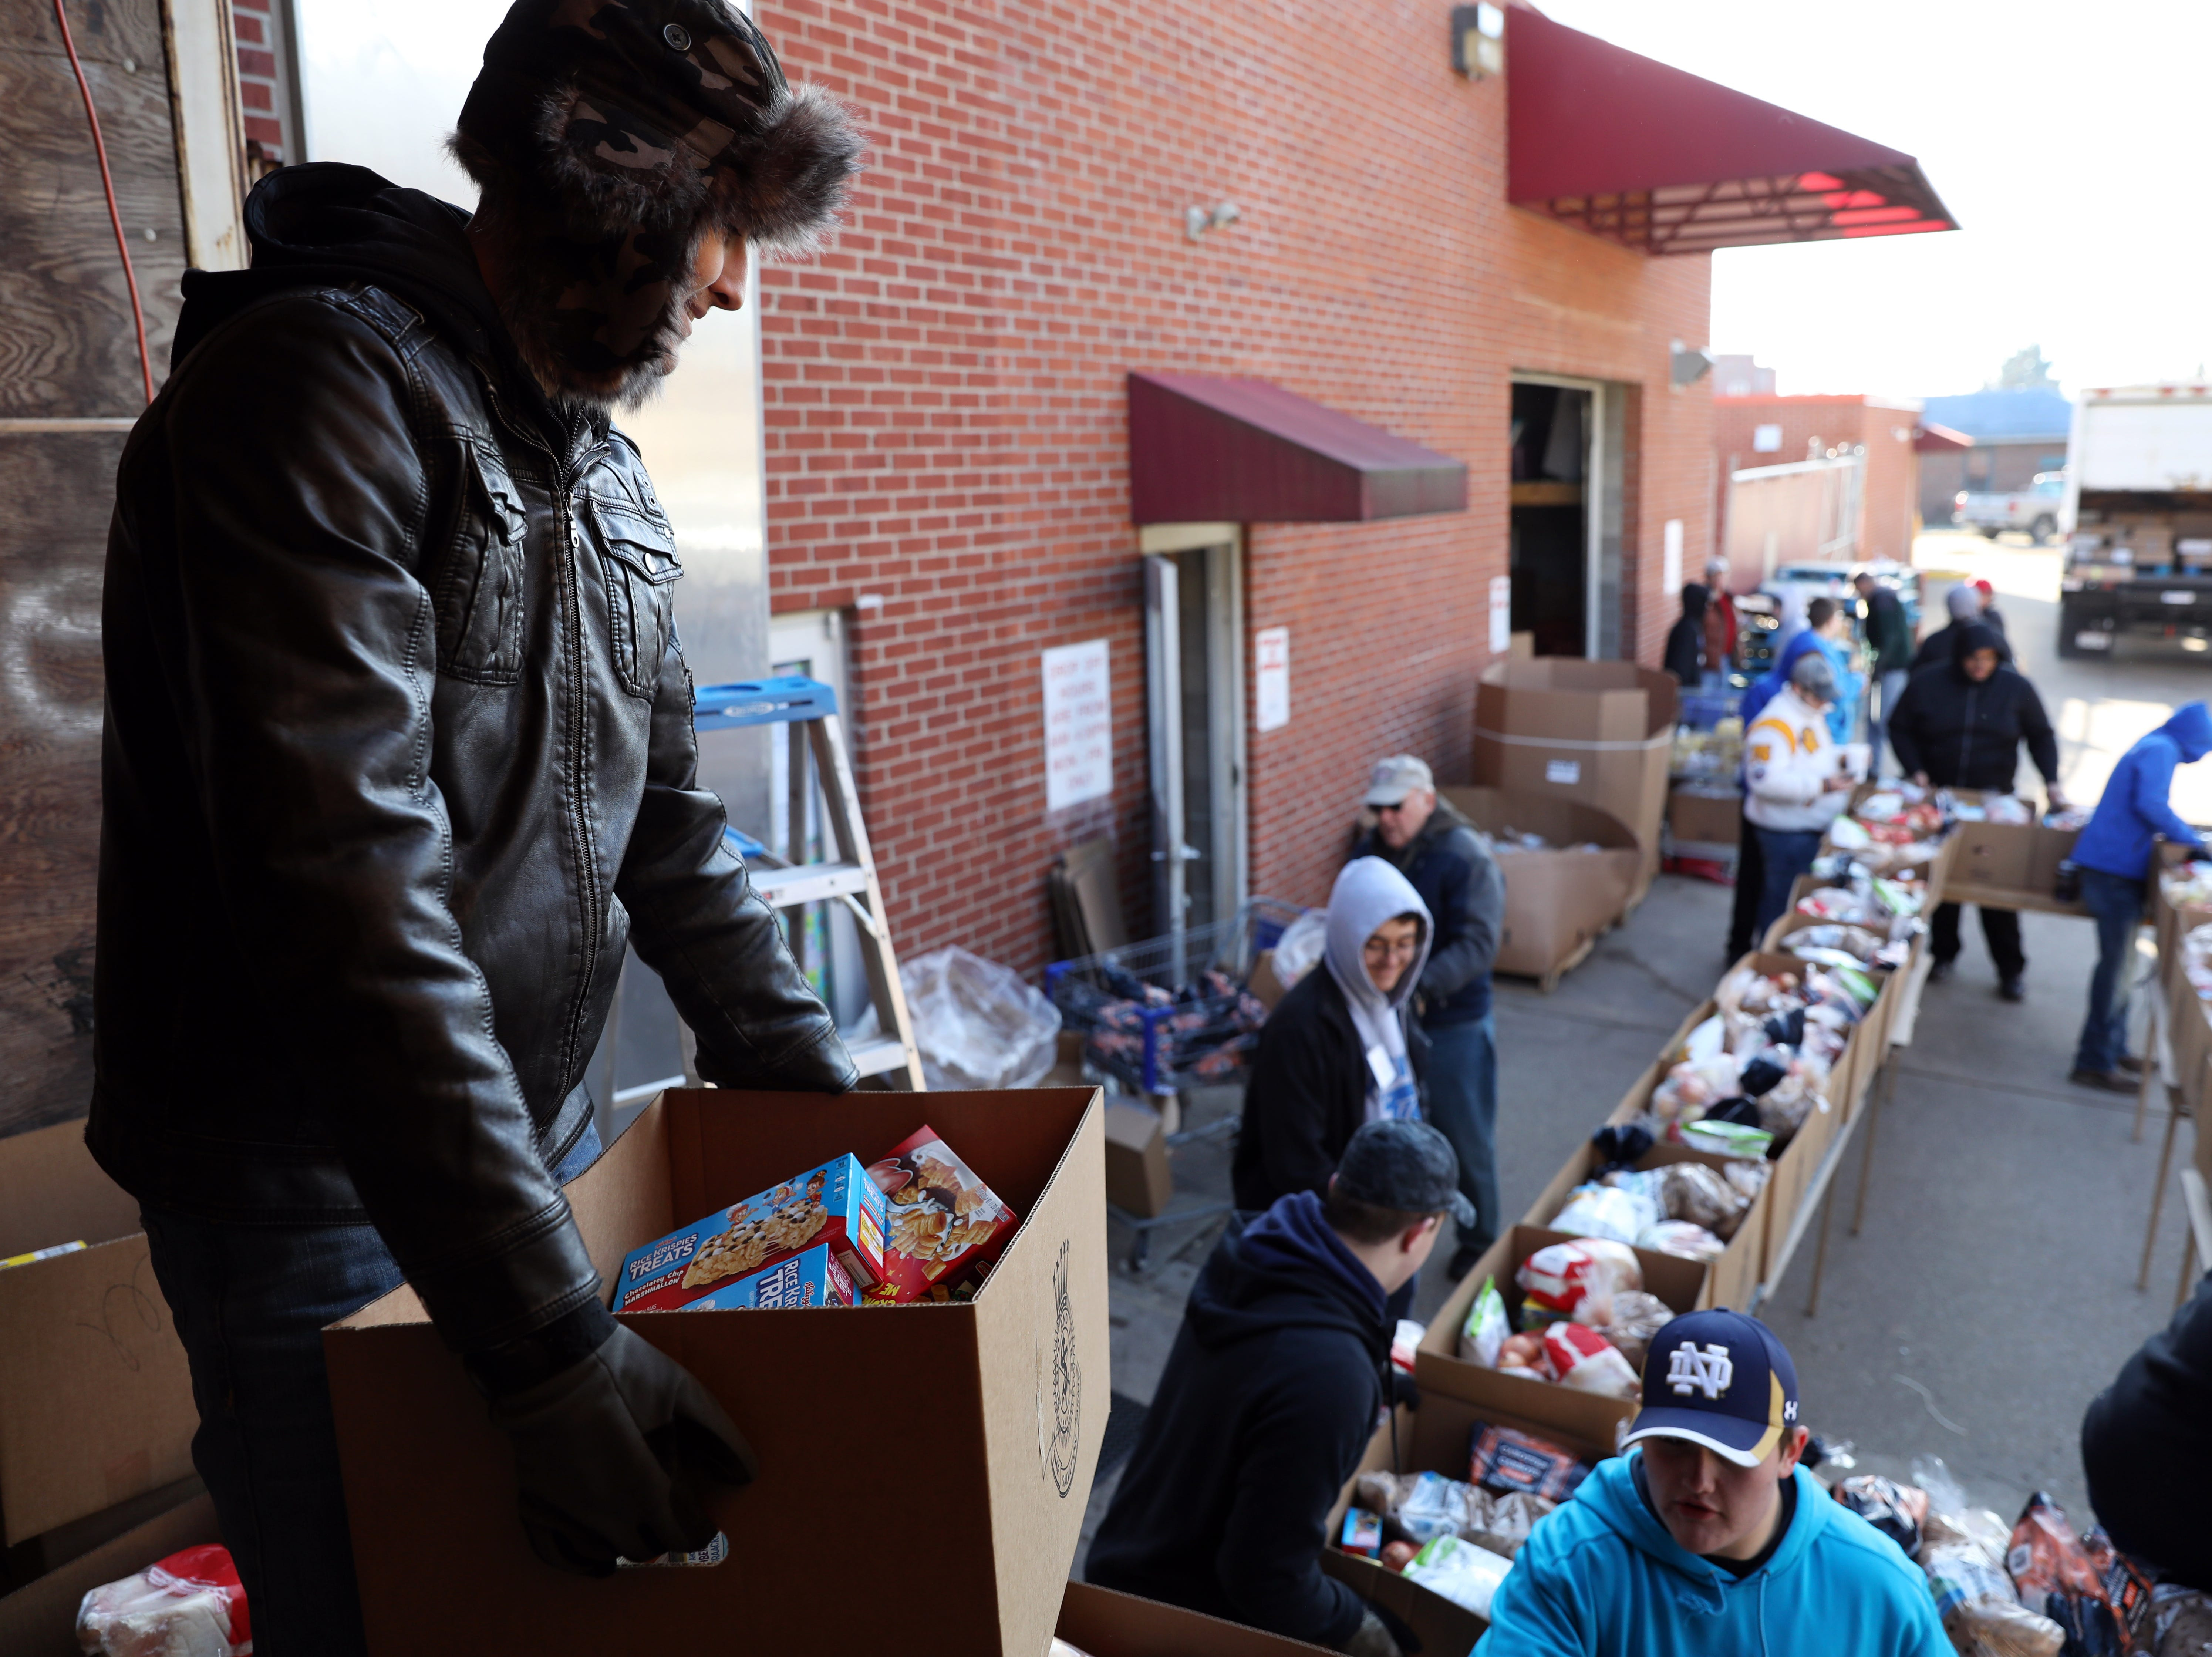 Brodee Creeks holds a box of food while volunteering at the Salvation Army on Tuesday.